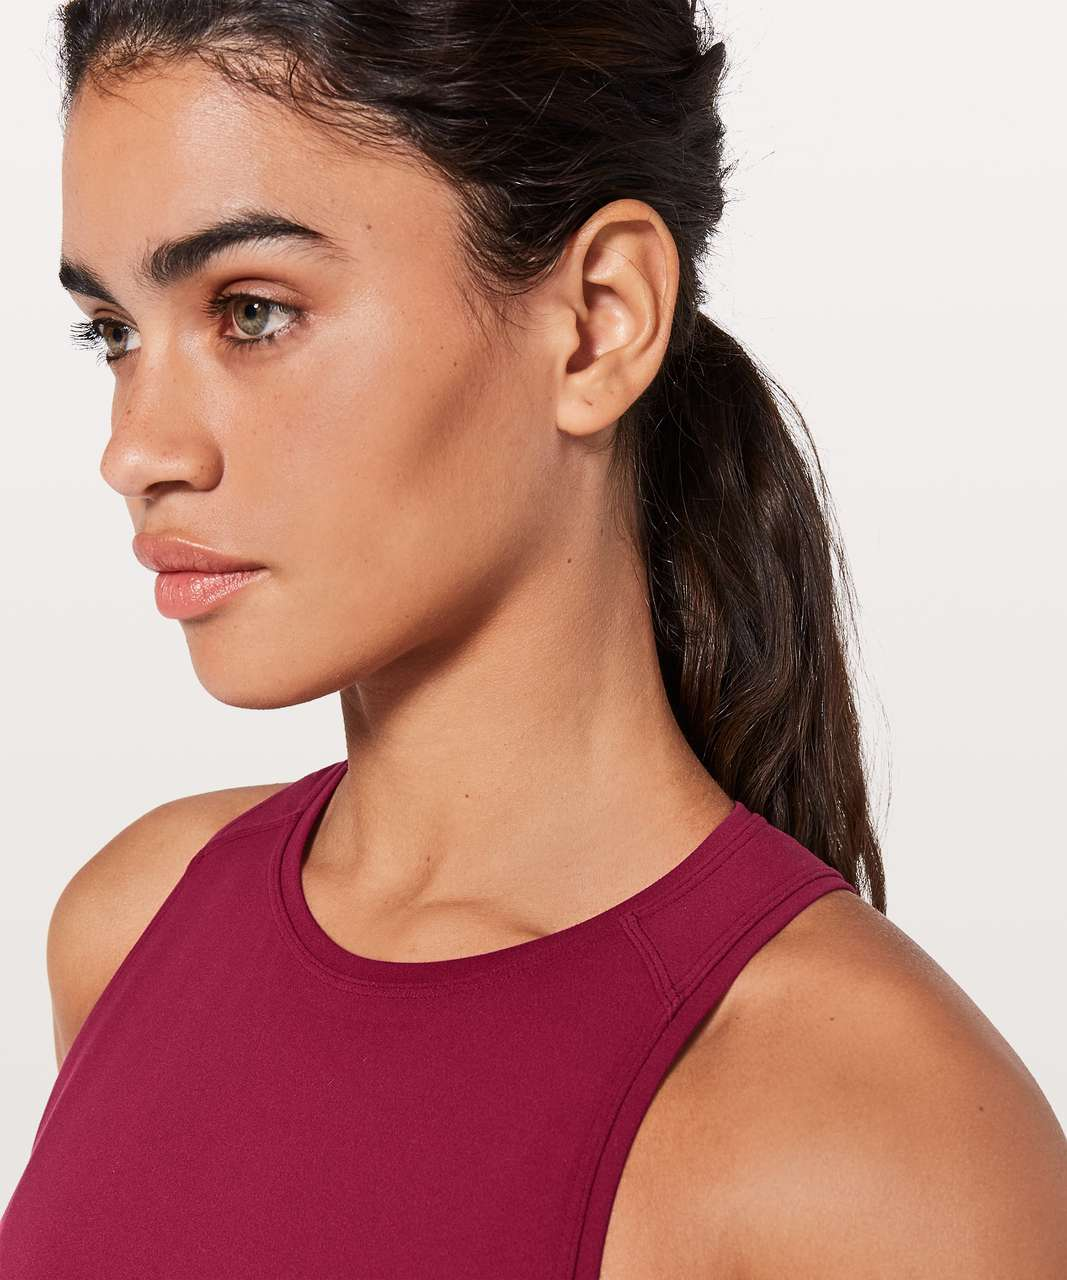 Lululemon Get Going Dress - Ruby Wine